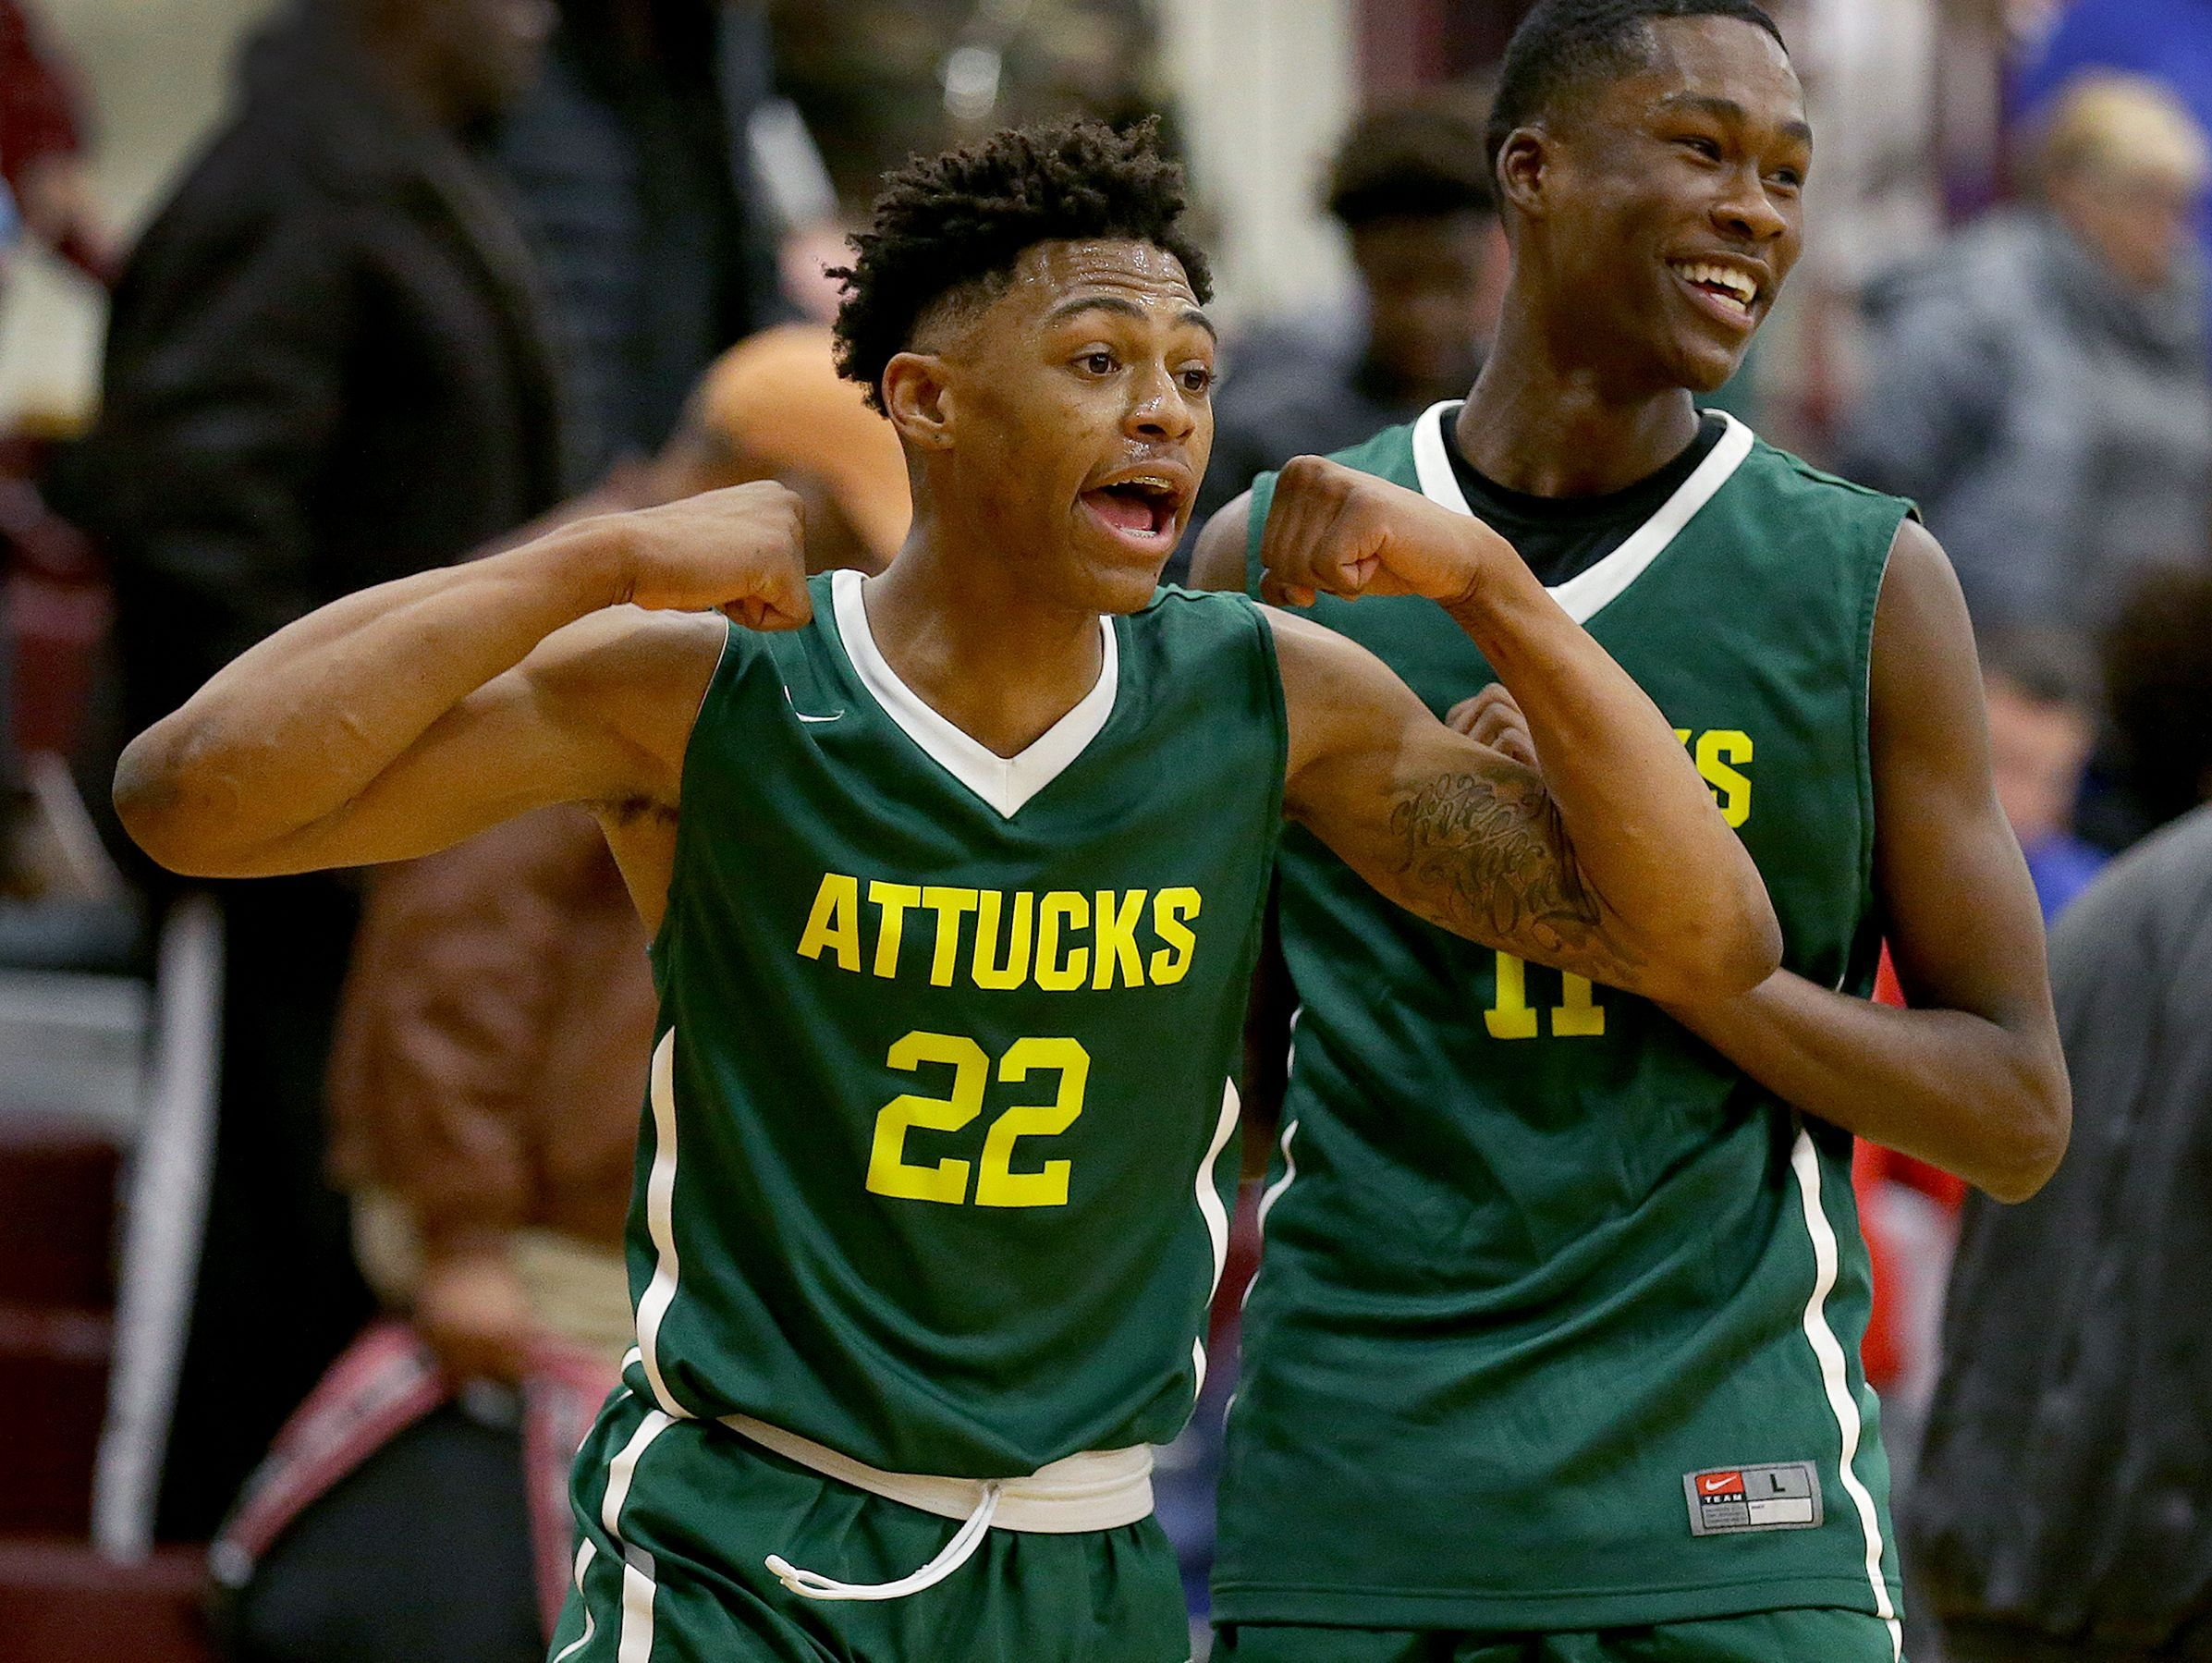 Crispus Attucks Tigers Nike Sibande (22) and Derrick Briscoe (11) begin to celebrate their win in their IHSAA 3A Sectional basketball game Friday, March 3, 2017, evening at Brebeuf Jesuit Preparatory School. The Crispus Attucks Tigers defeated the Manual Redskins 65-53.